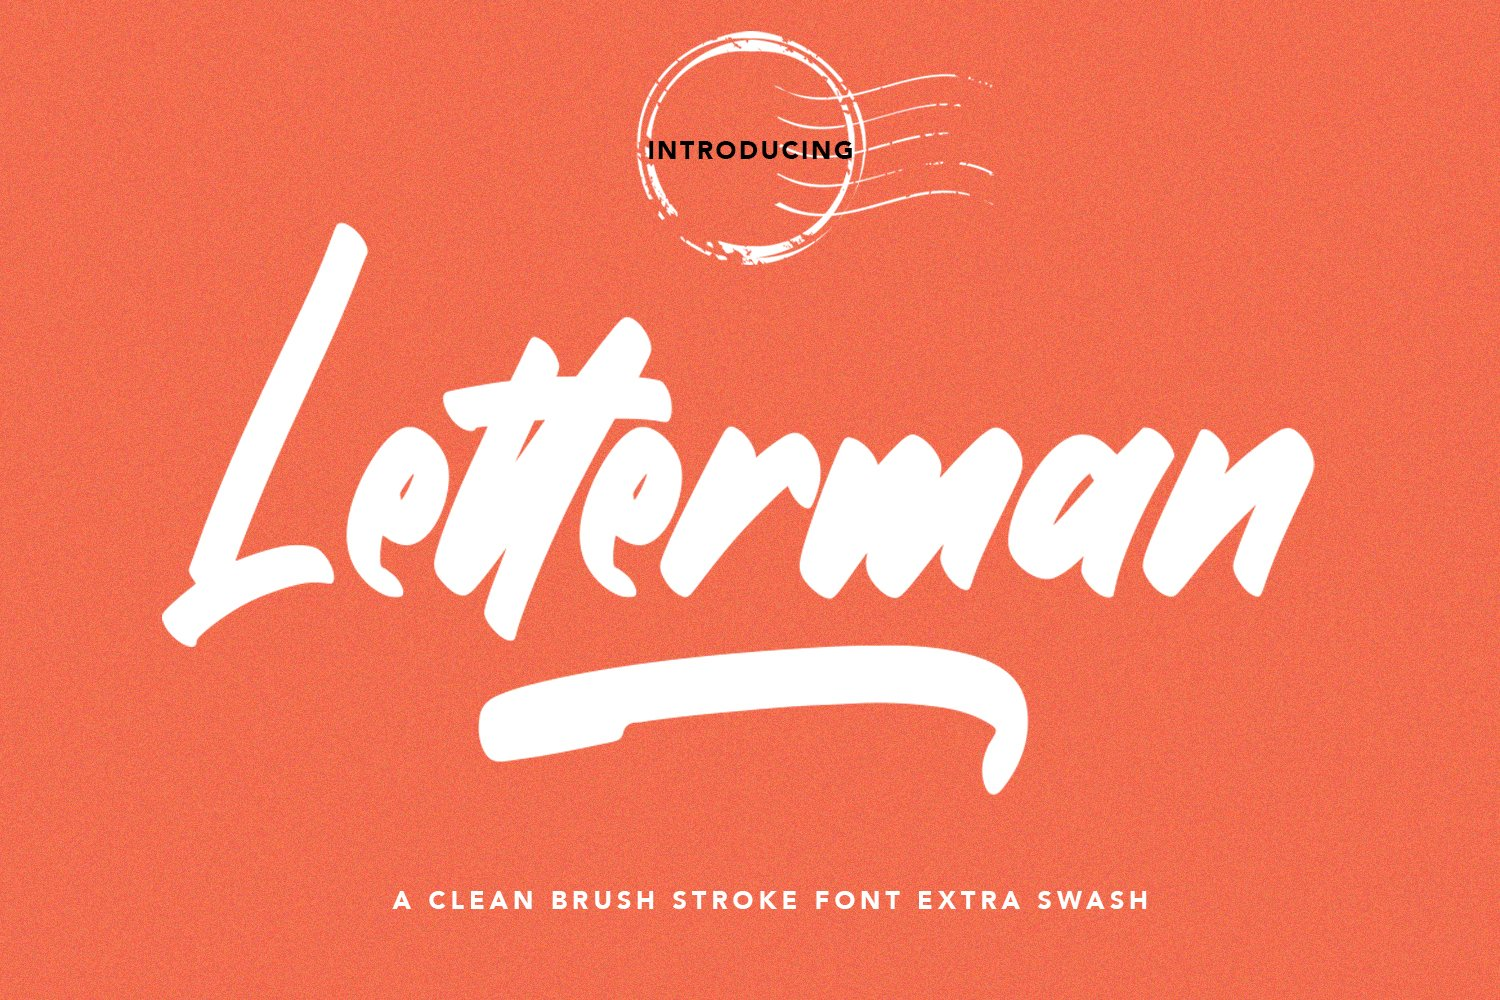 Letterman - Clean Brush Font example image 1